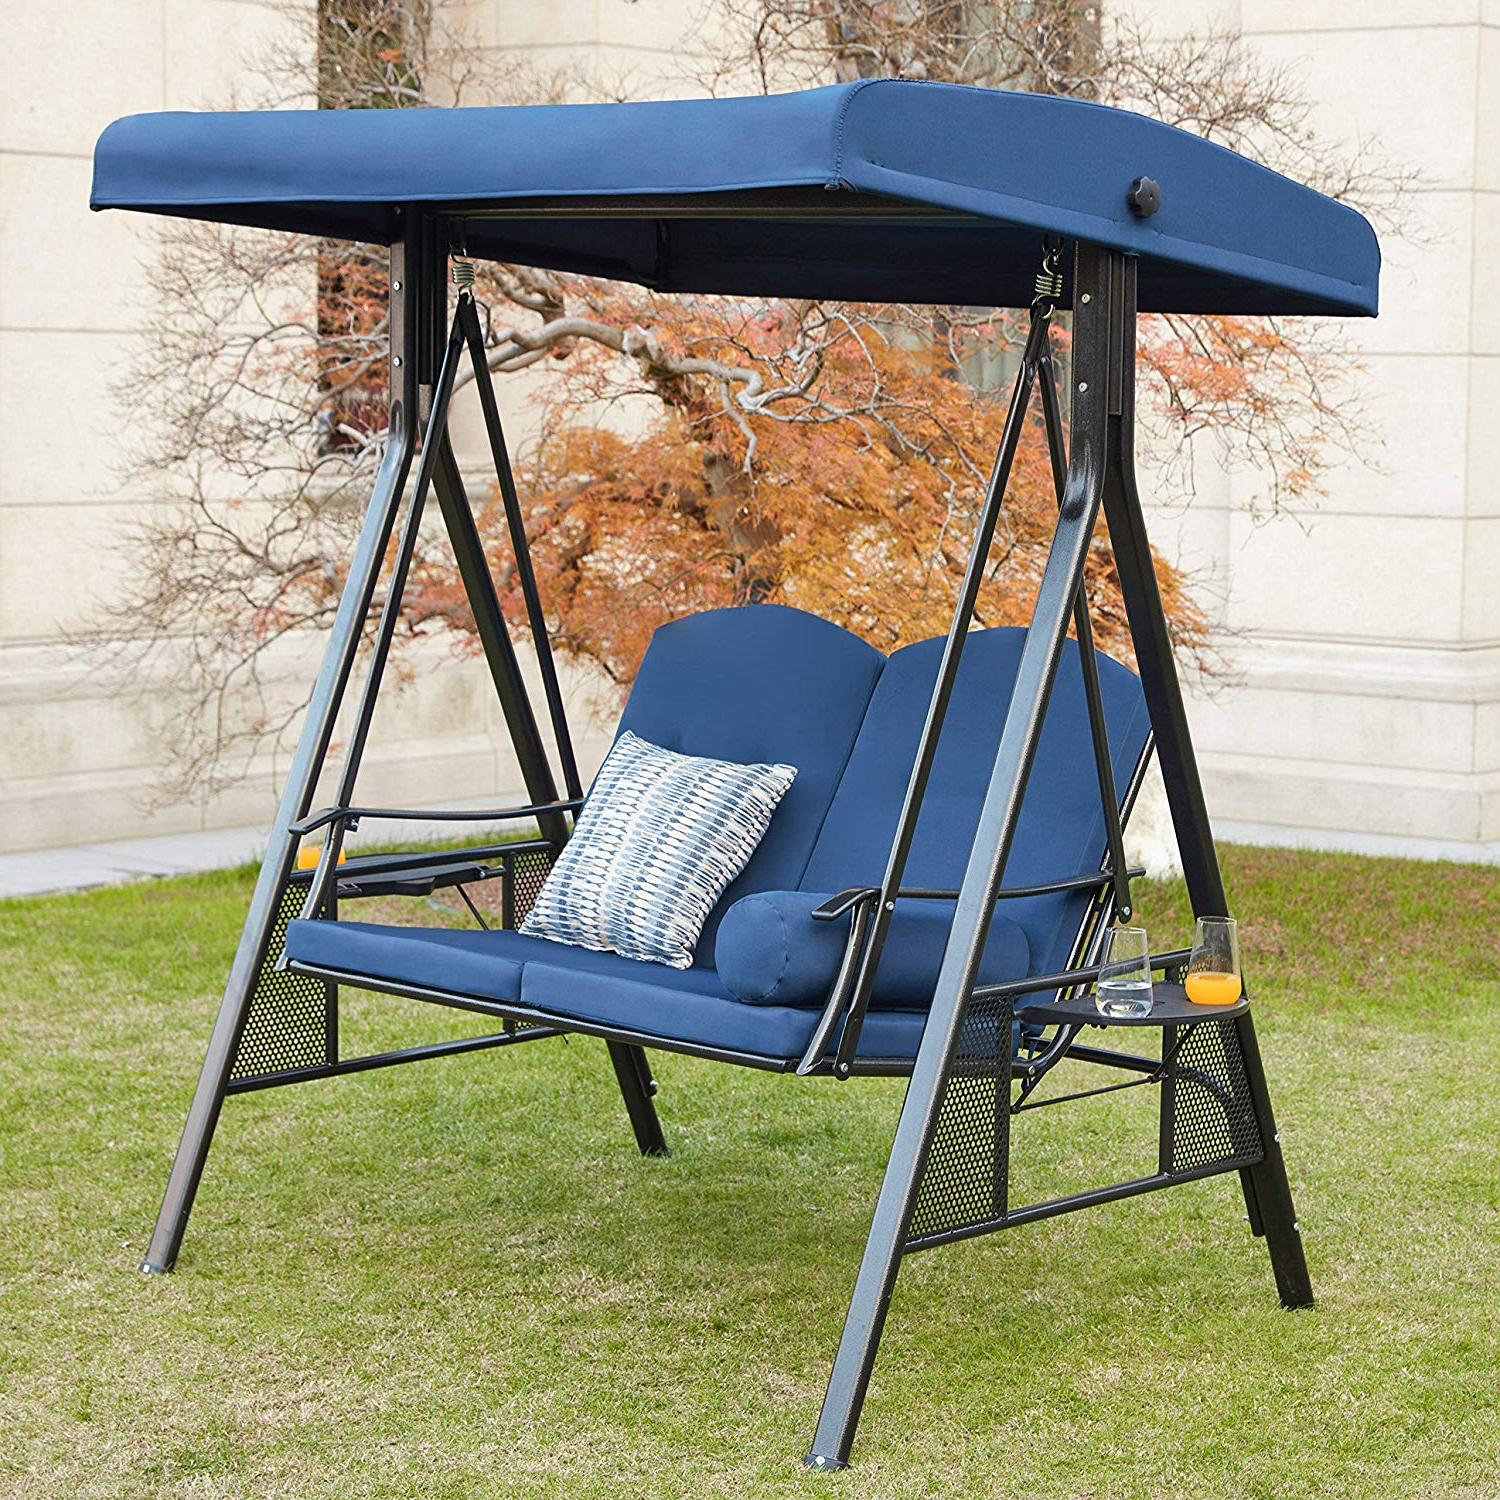 Most Popular Lokatse Home 2 Person Canopy Outdoor Swing Chair Patio Hammock Cushions And  Teapoys Loveseat Bench Bed Furniture, 2 Seat Blue With Regard To 2 Person Adjustable Tilt Canopy Patio Loveseat Porch Swings (Gallery 6 of 30)